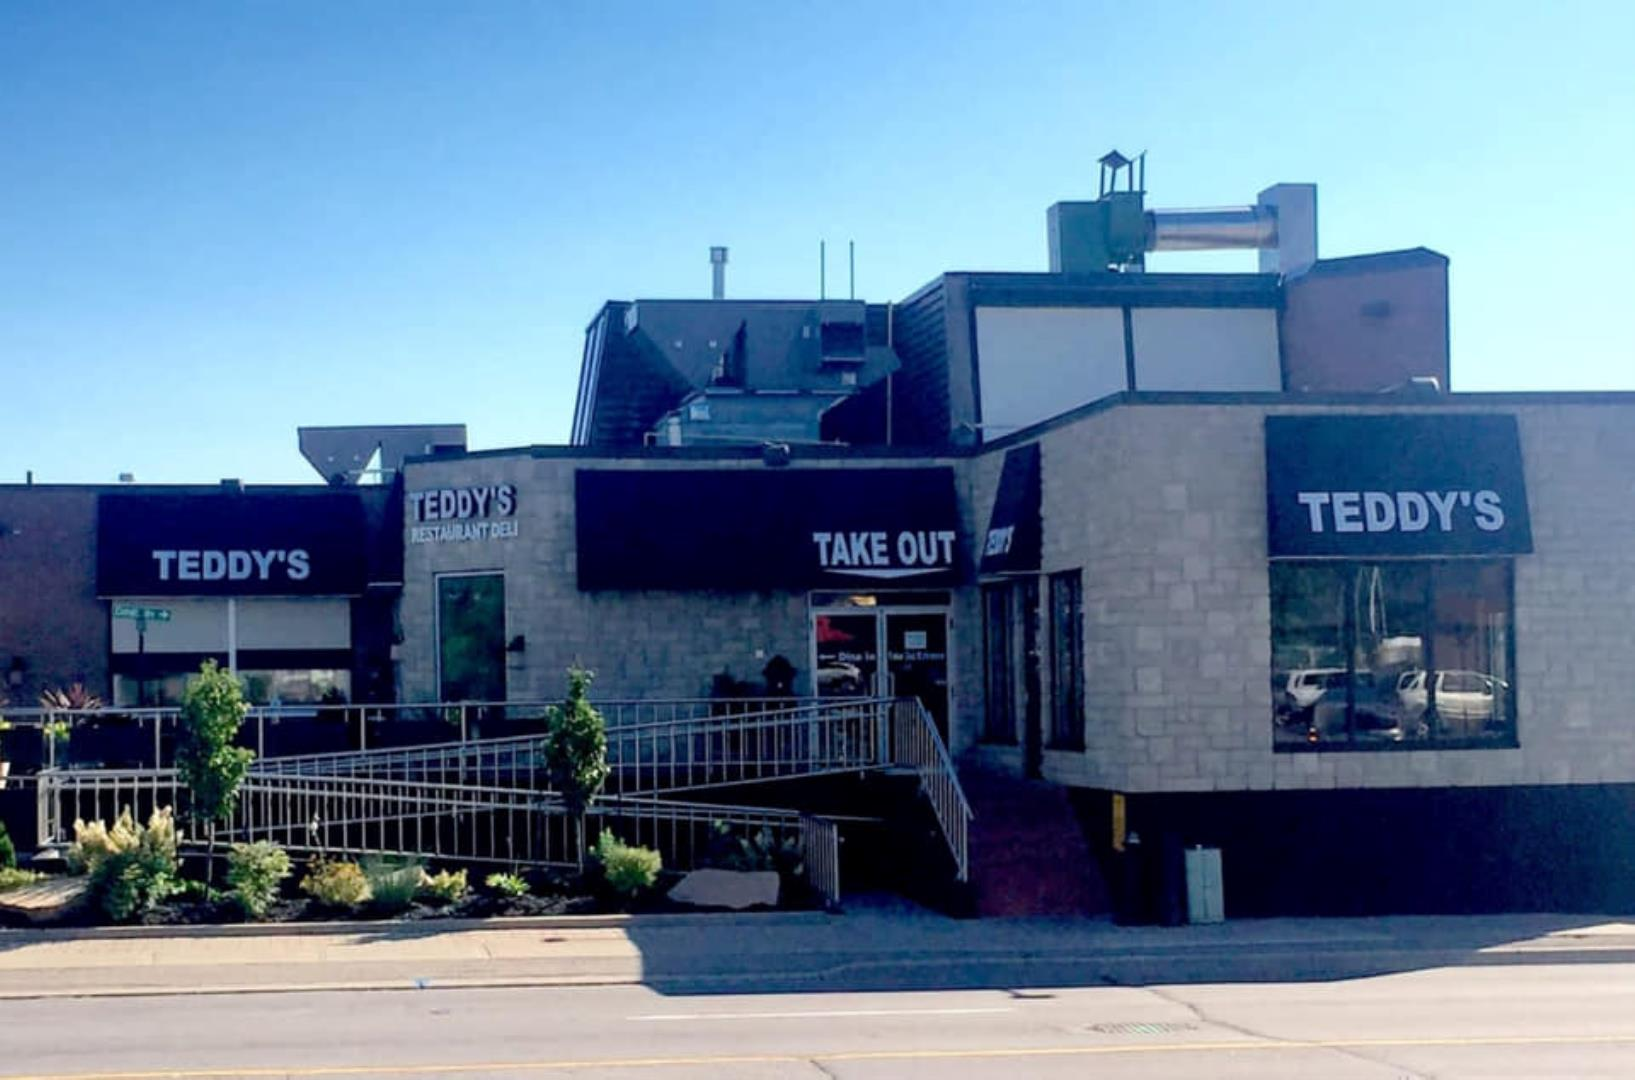 Teddy's Restaurant and Deli Restaurant - Picture